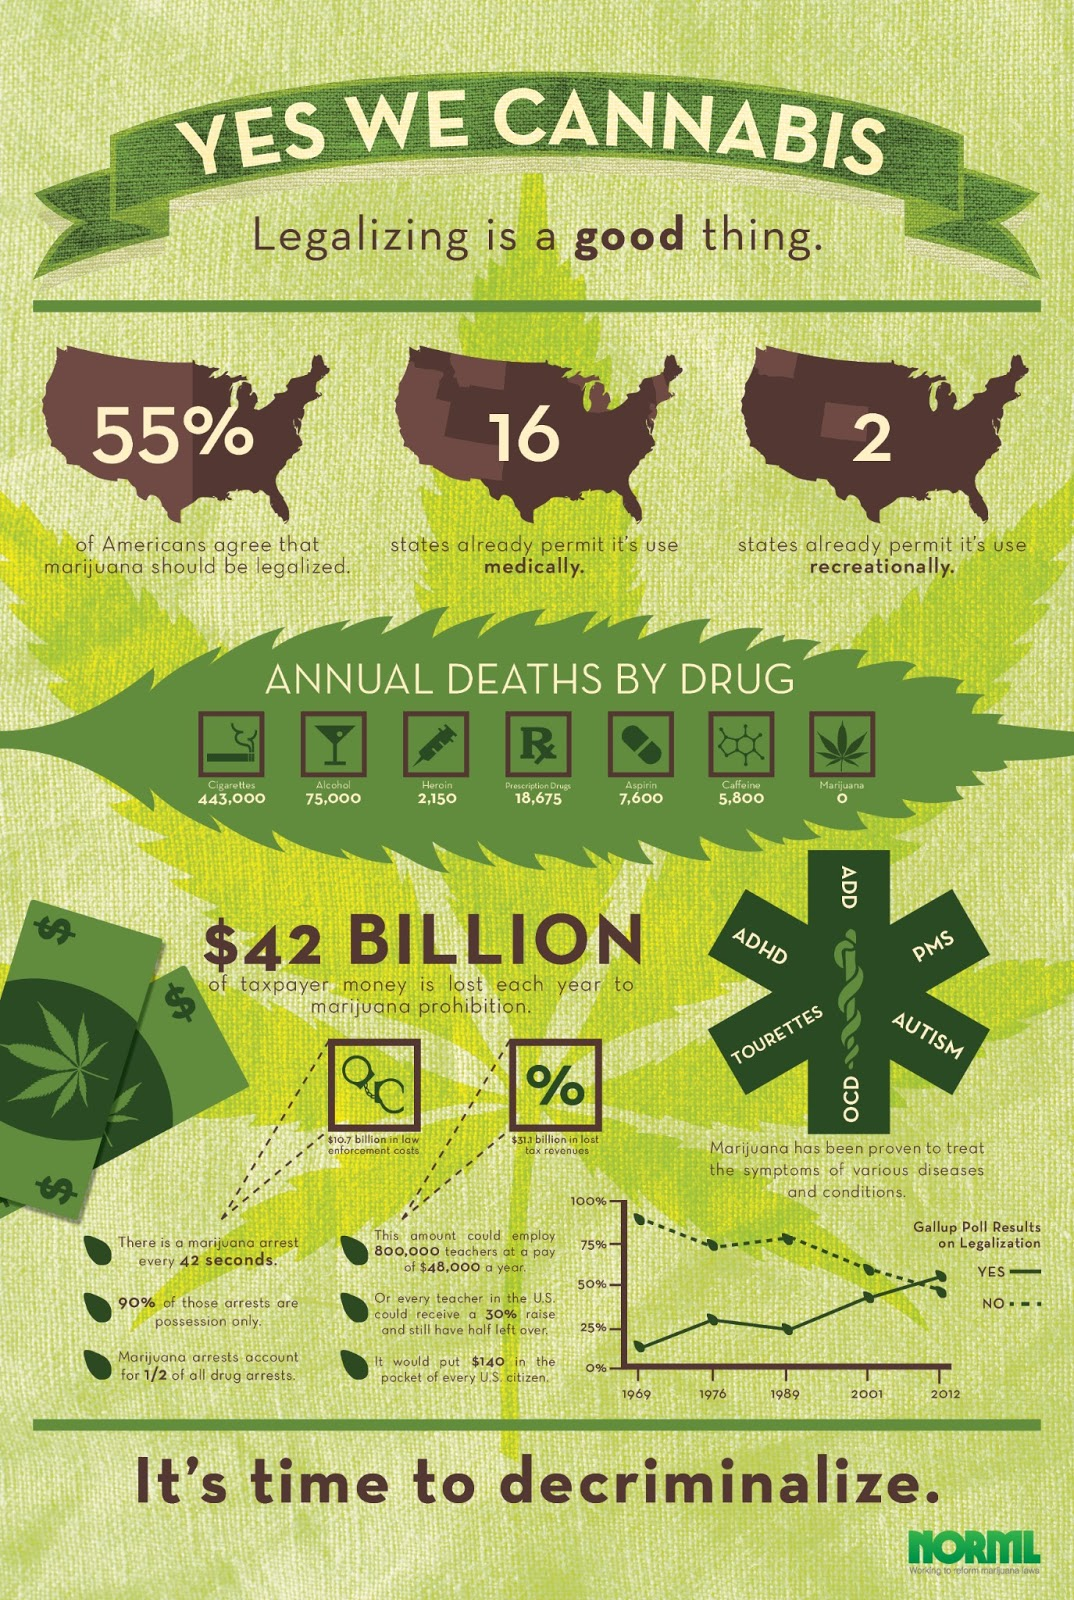 yes we cannabis infographic campaign complete